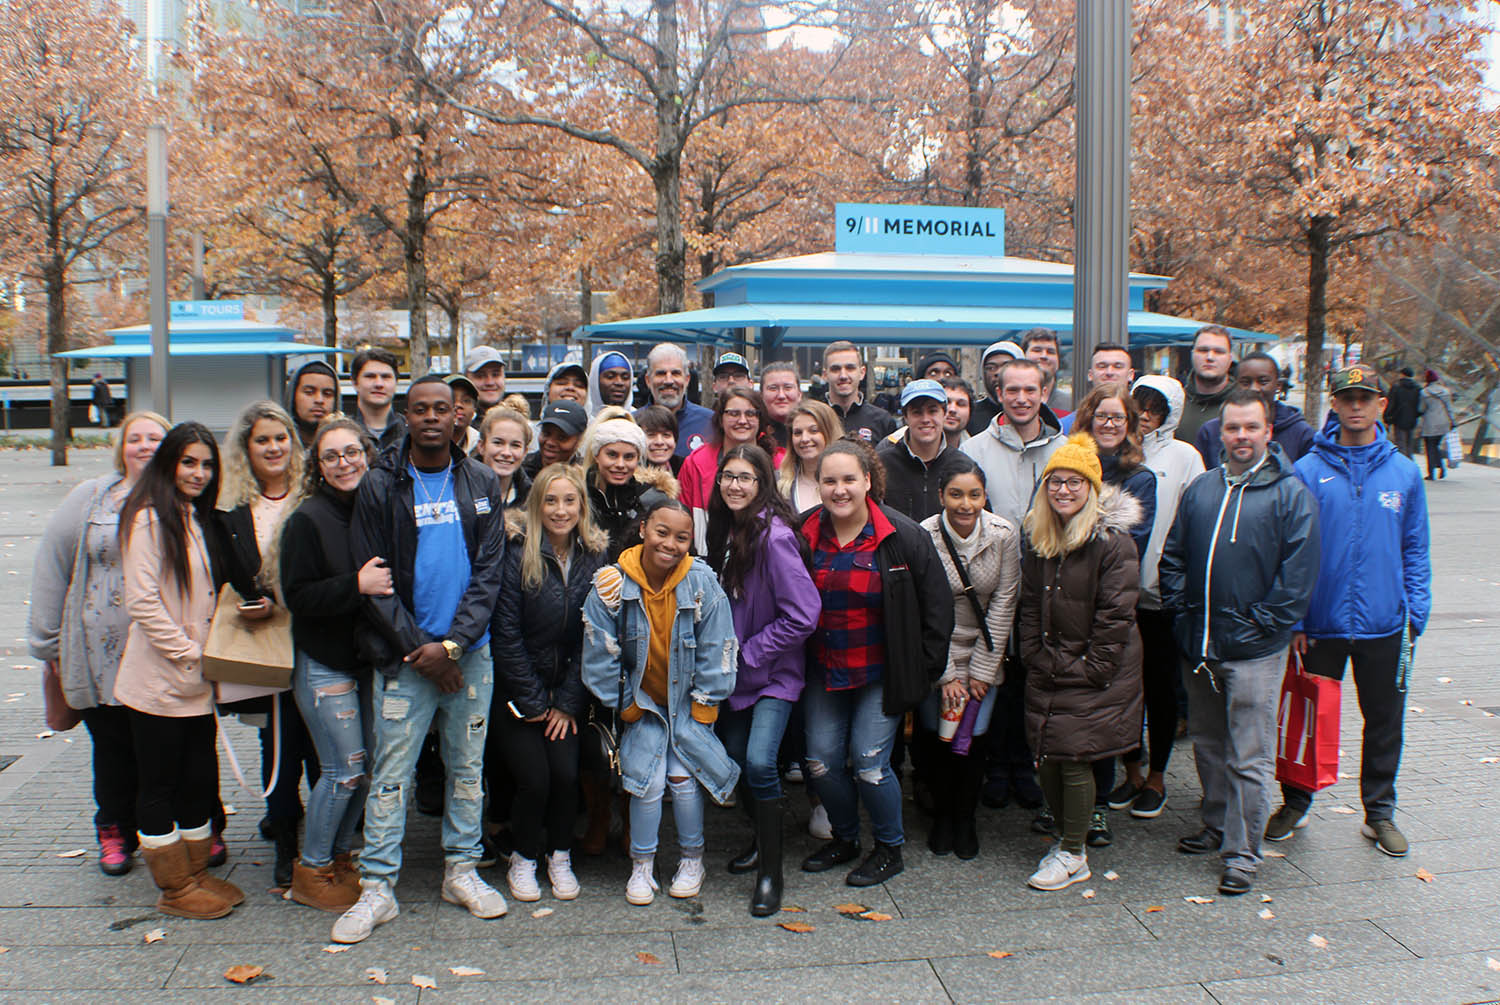 Students studying the cultural and historic aspects of the 9/11 terrorist attacks traveled to New York City to view the 9/11 Museum and Memorial.